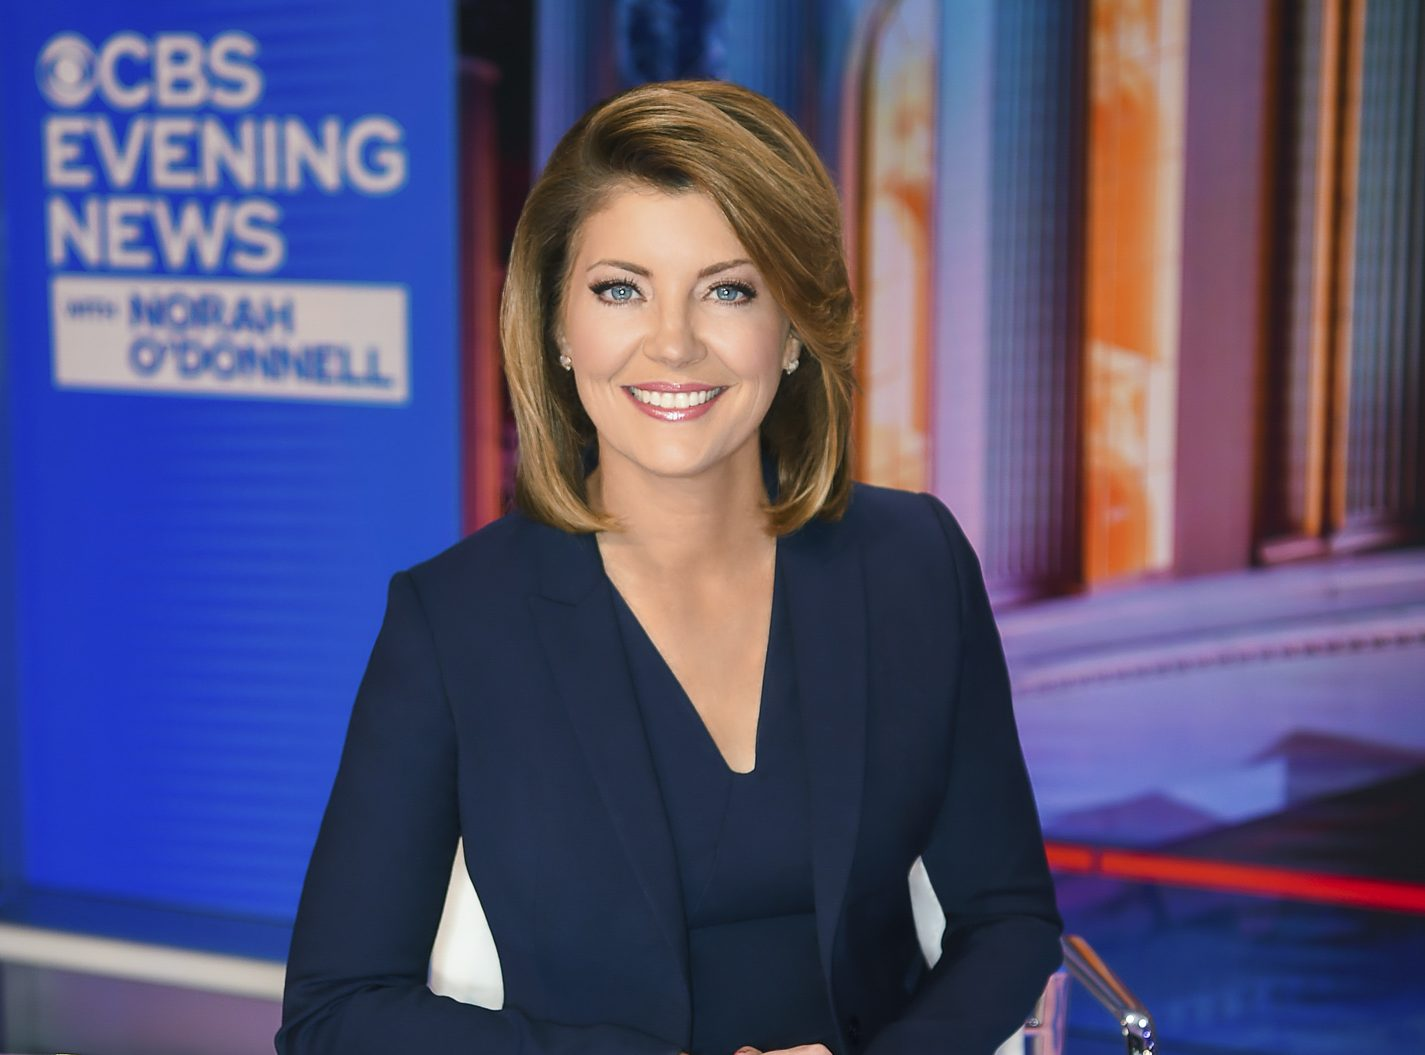 Norah O'Donnell's D.C. Move Brings Early Ratings Spike to 'CBS Evening News'